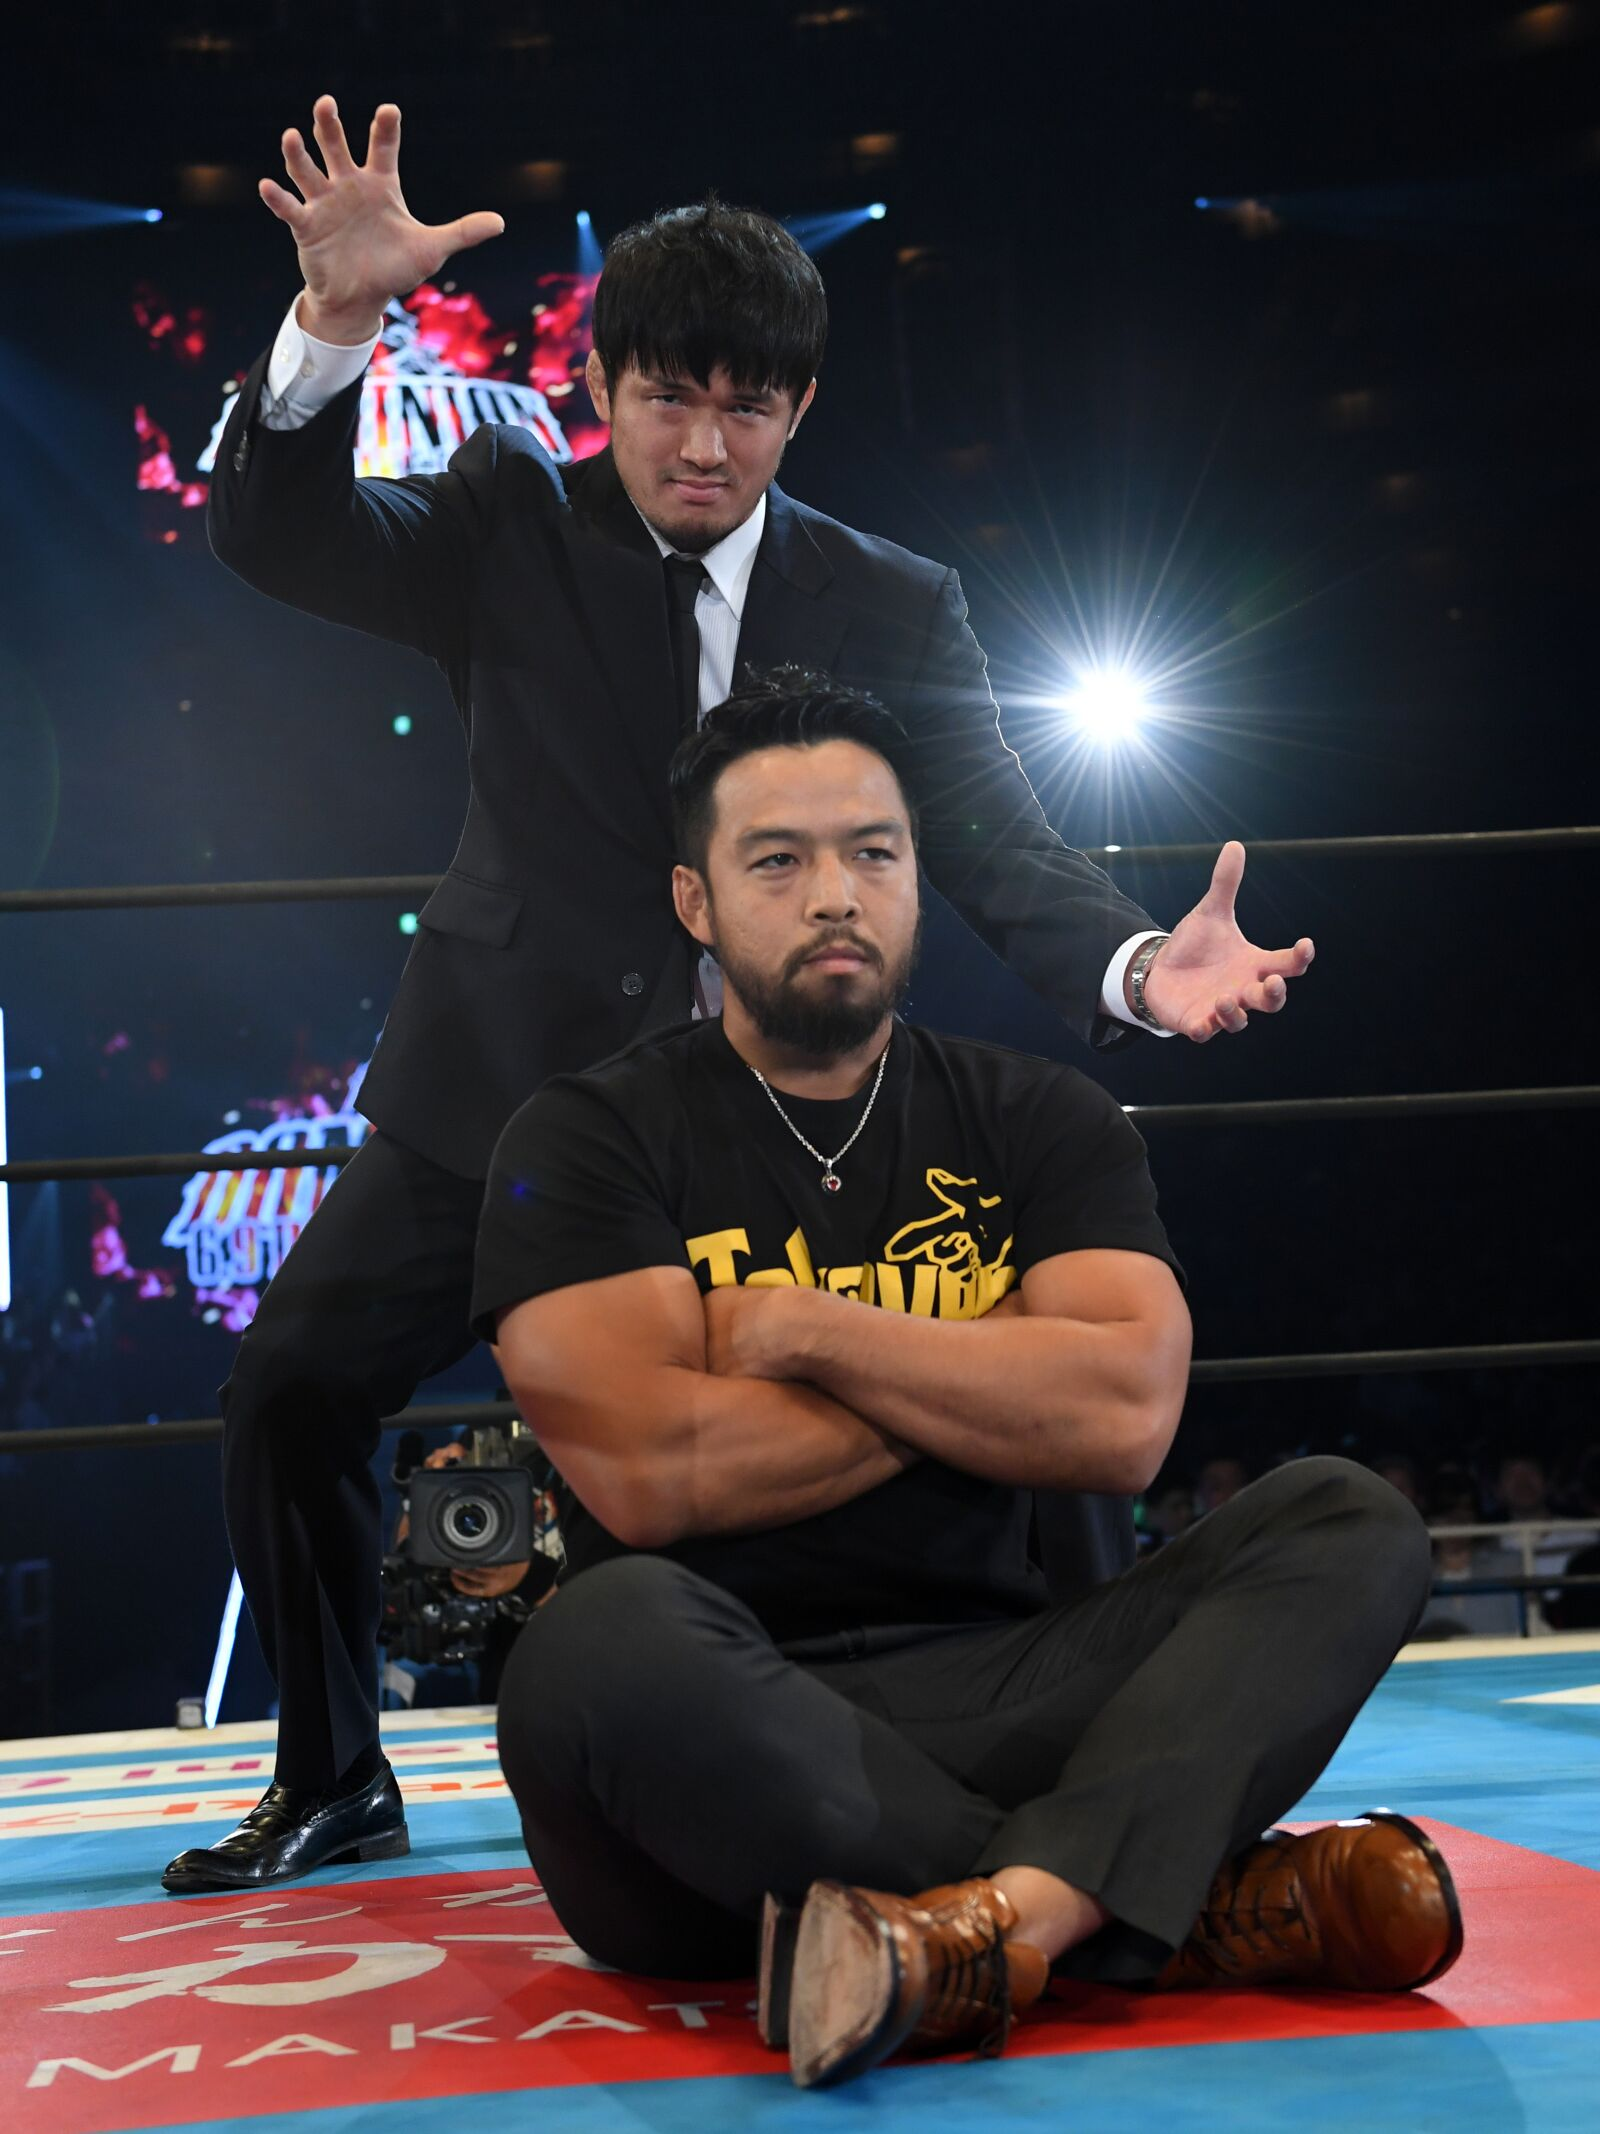 NJPW G1 Climax 29 Day 3 results and analysis: New Japan delivers yet again